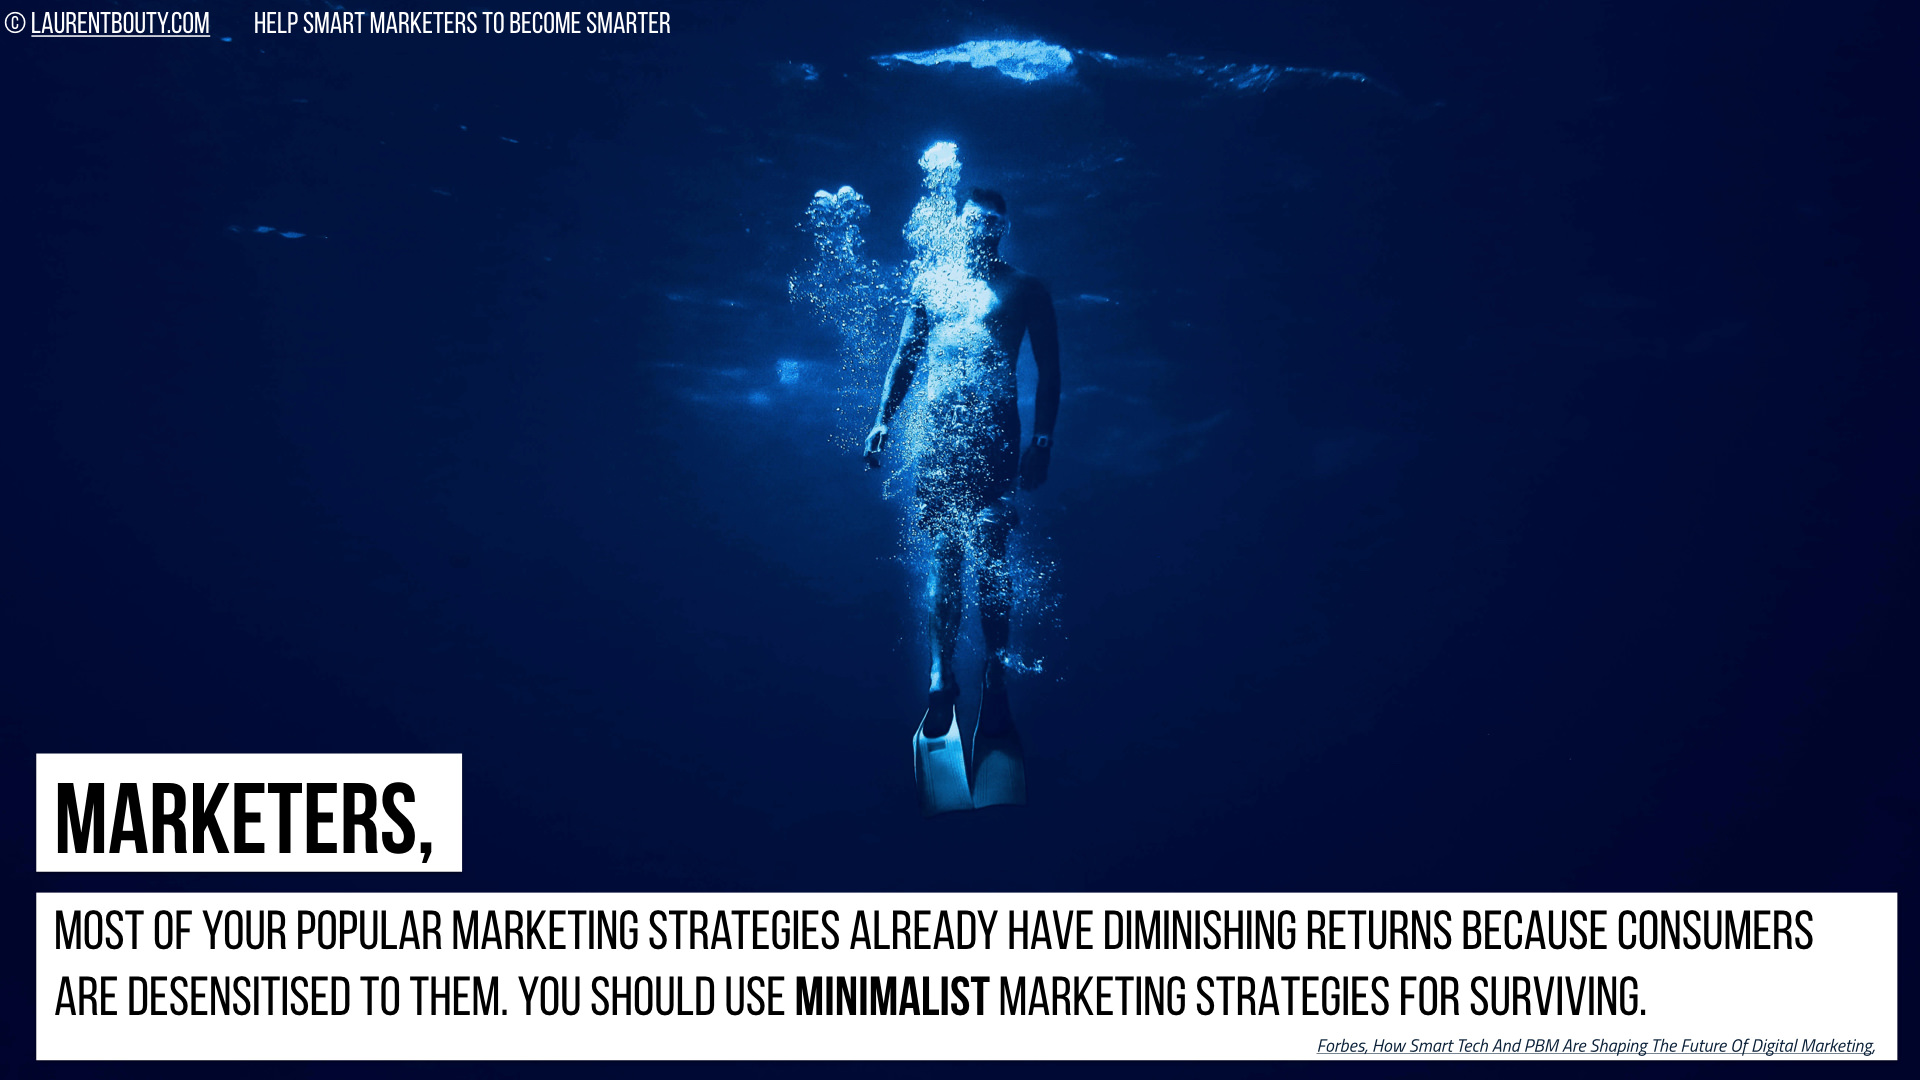 Marketers, You need Minimalist Marketing Strategies for Surviving